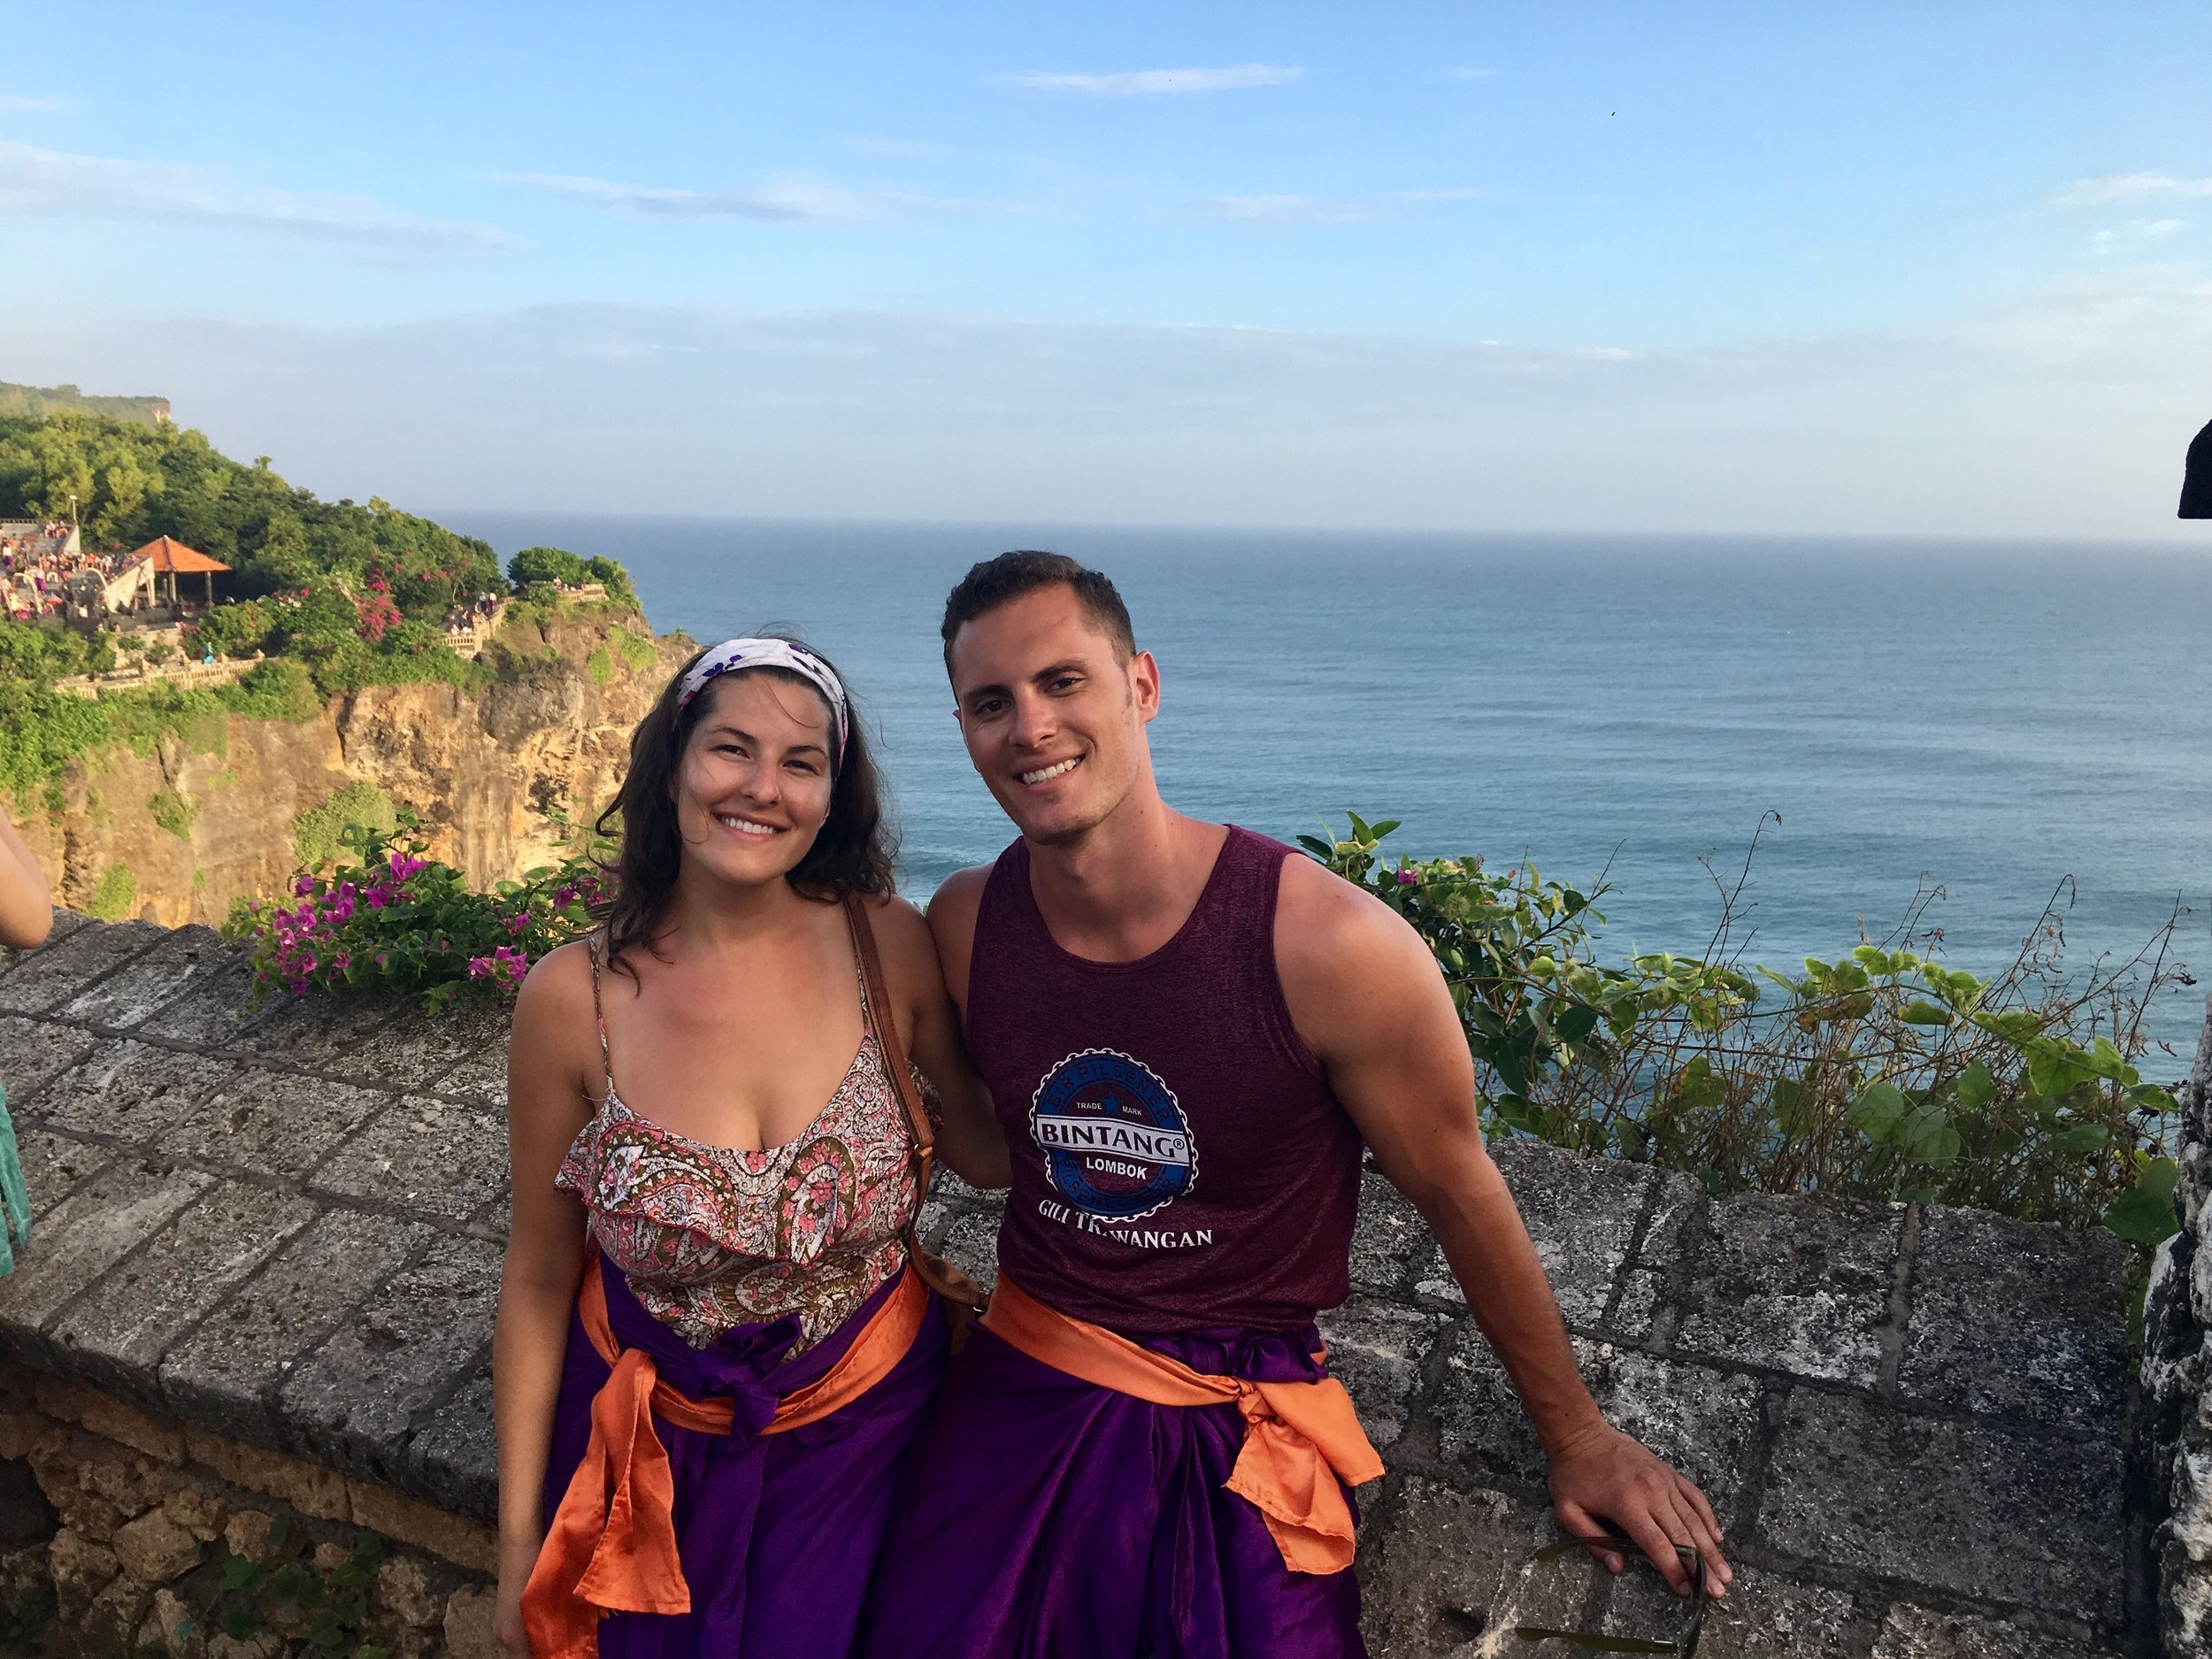 Kev and I in our traditional garb, required for all to enter the Uluwatu Temple.